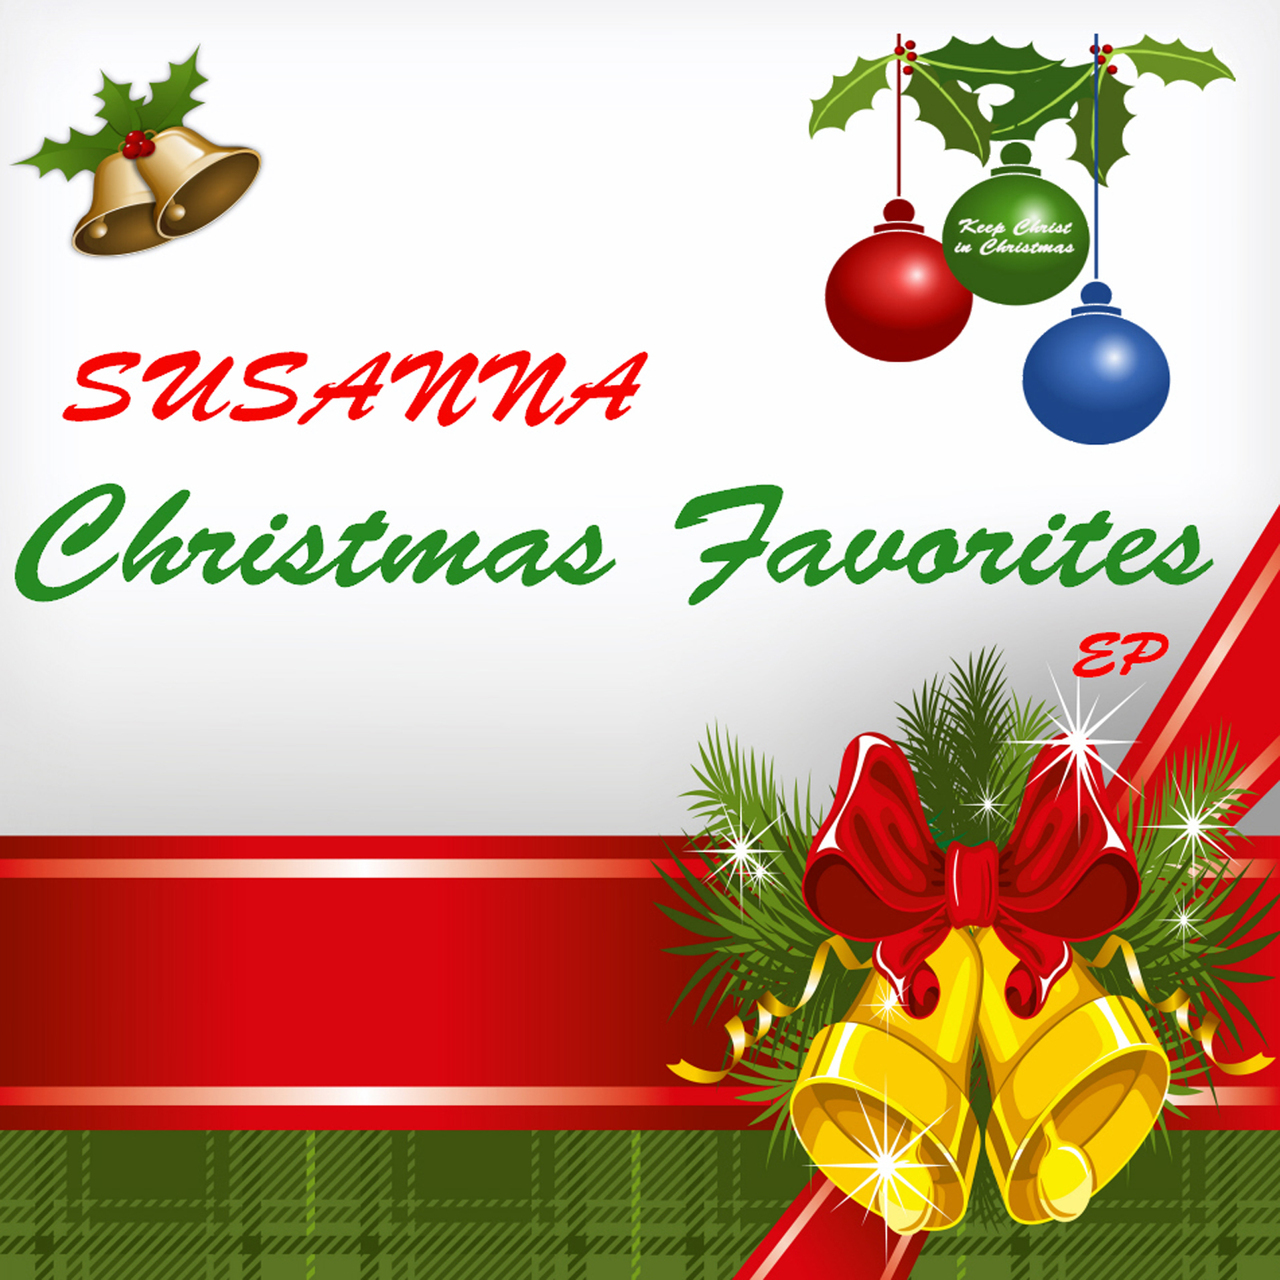 Christmas favorites ep by susanna